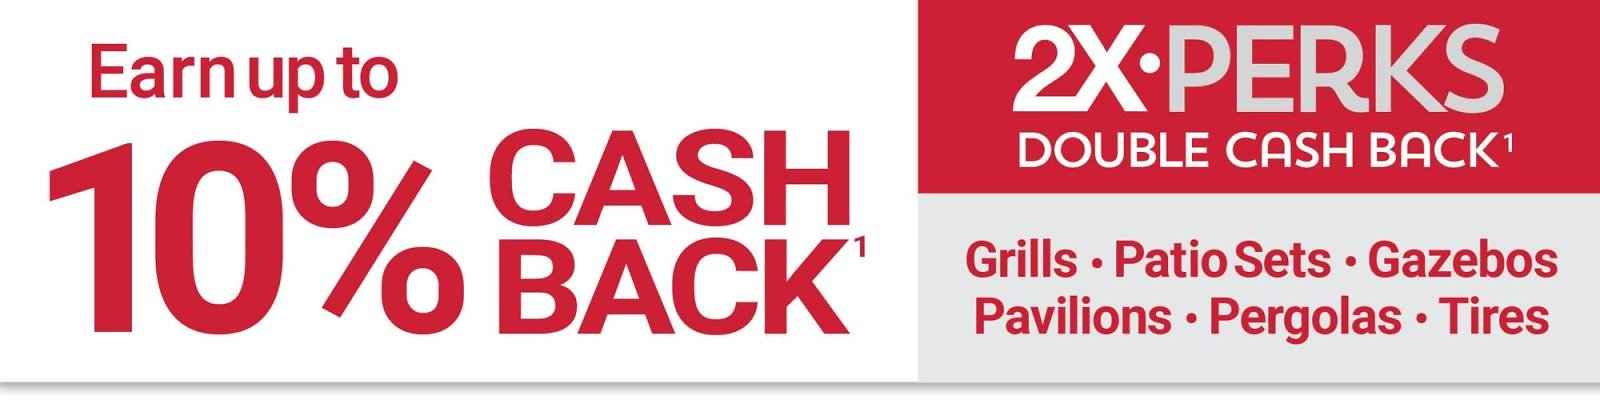 Up To 10% Cash Back Offer - BJ's